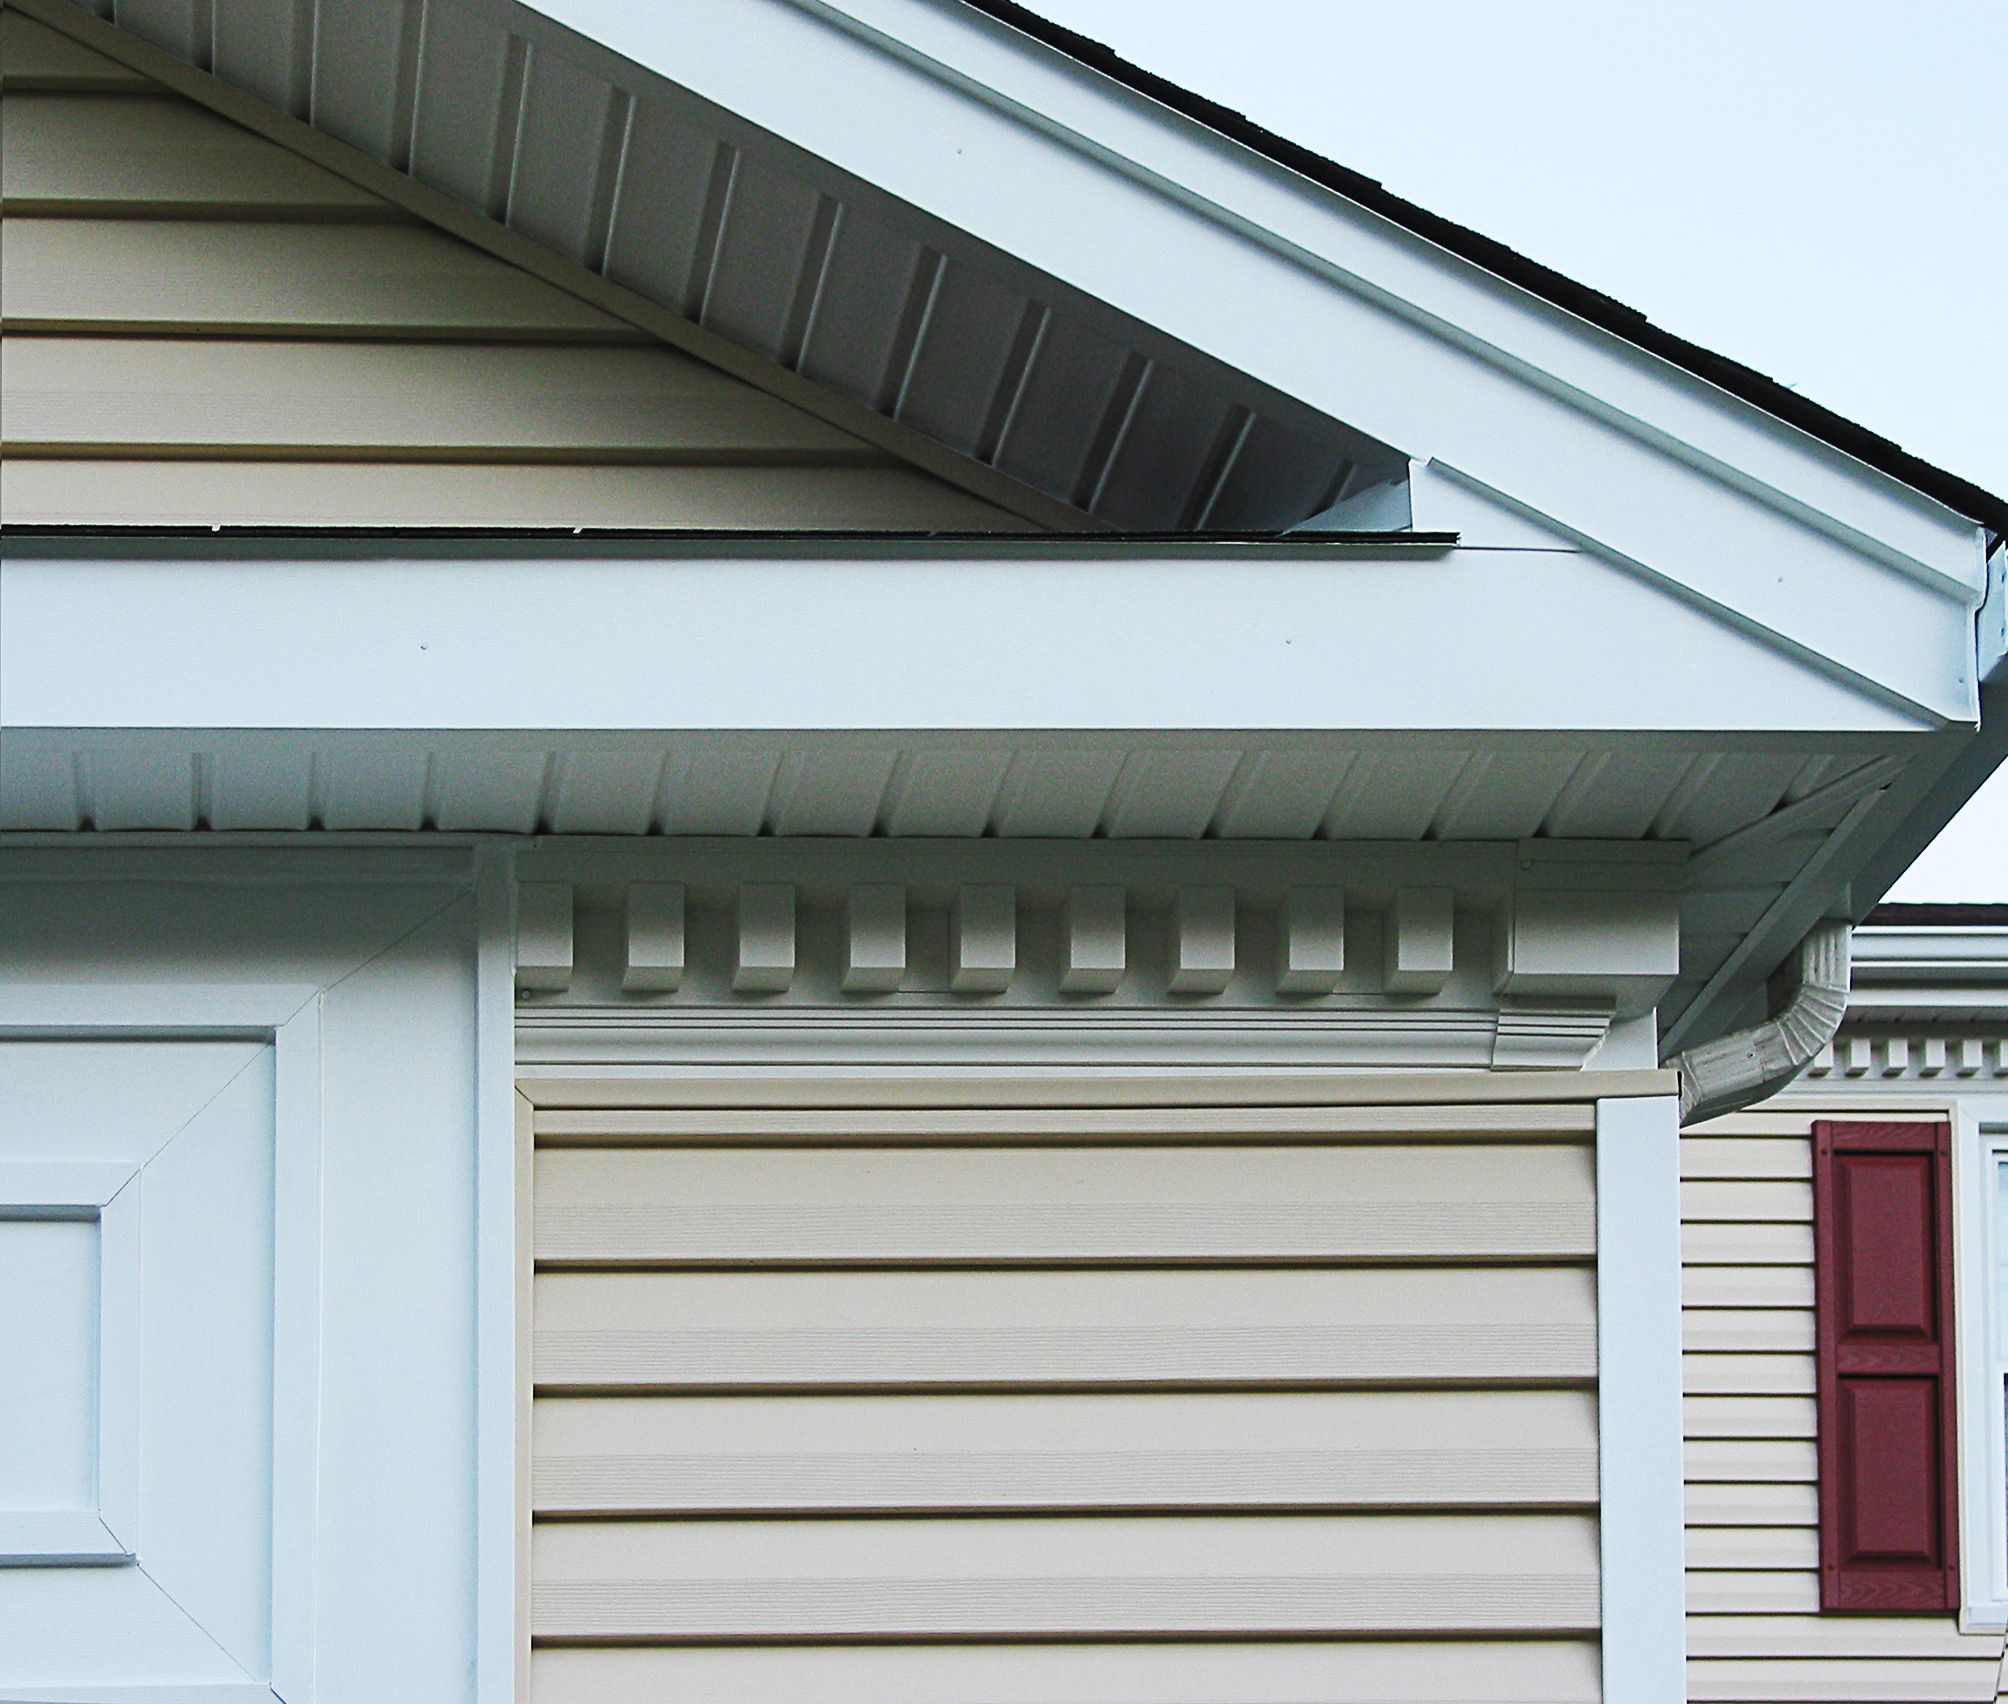 Siding Trim Capping Detail And Dentil Molding Project